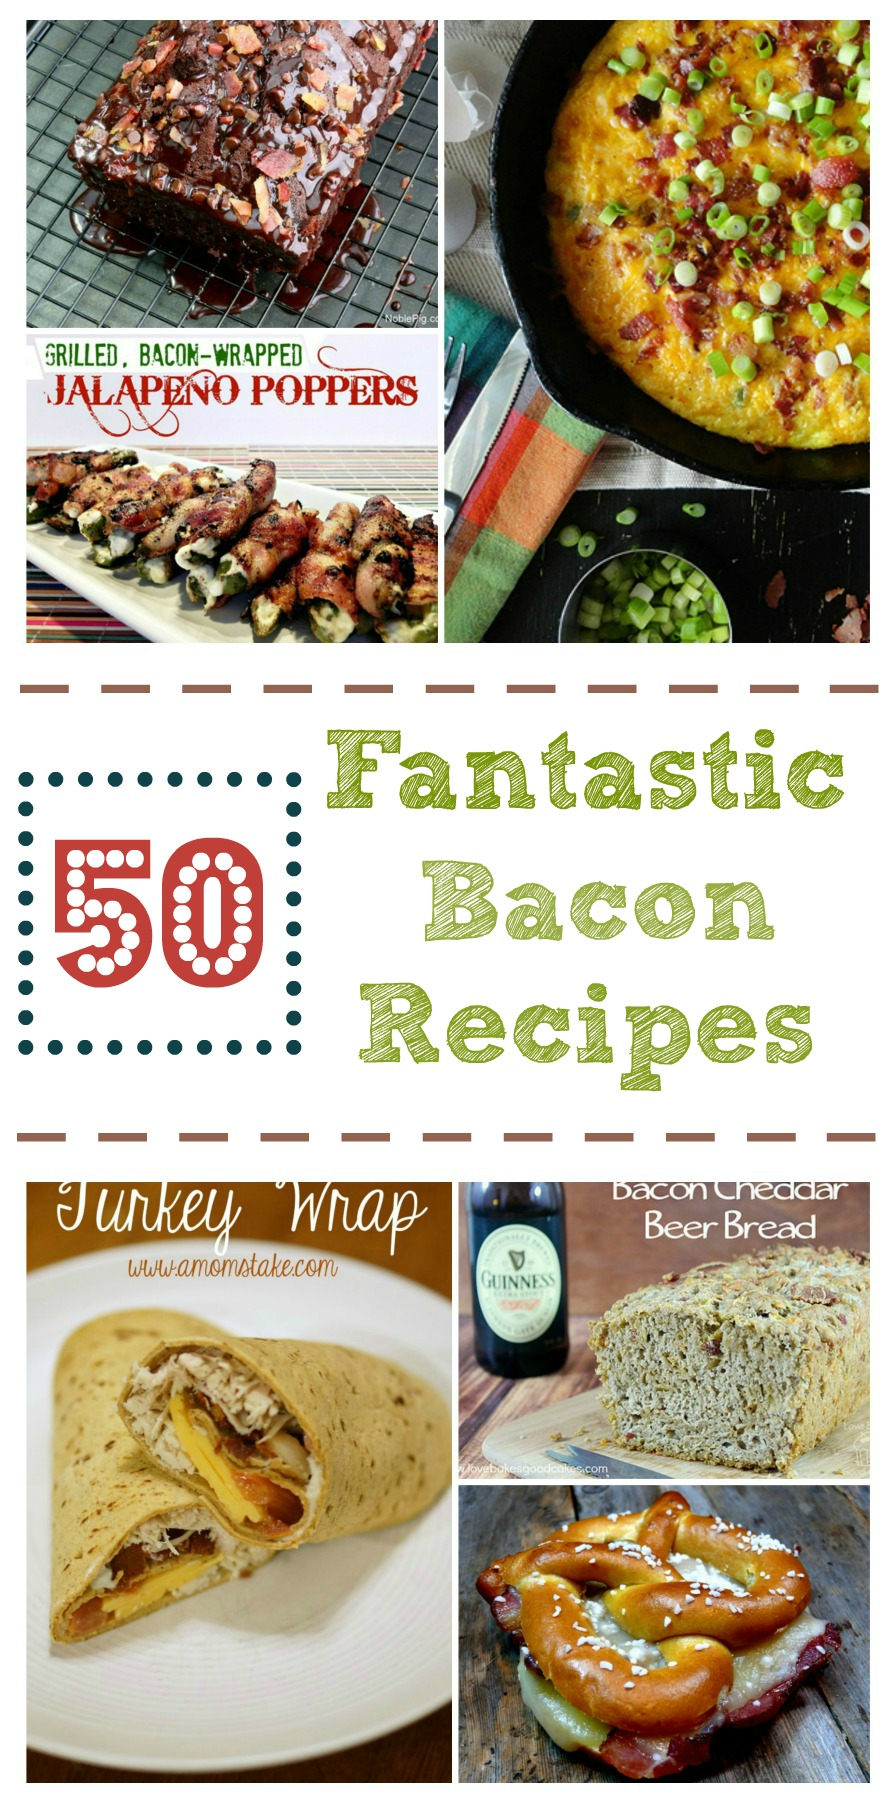 Love bacon? Make sure to check out our 50 Fantastic Bacon Recipes Round Up here!